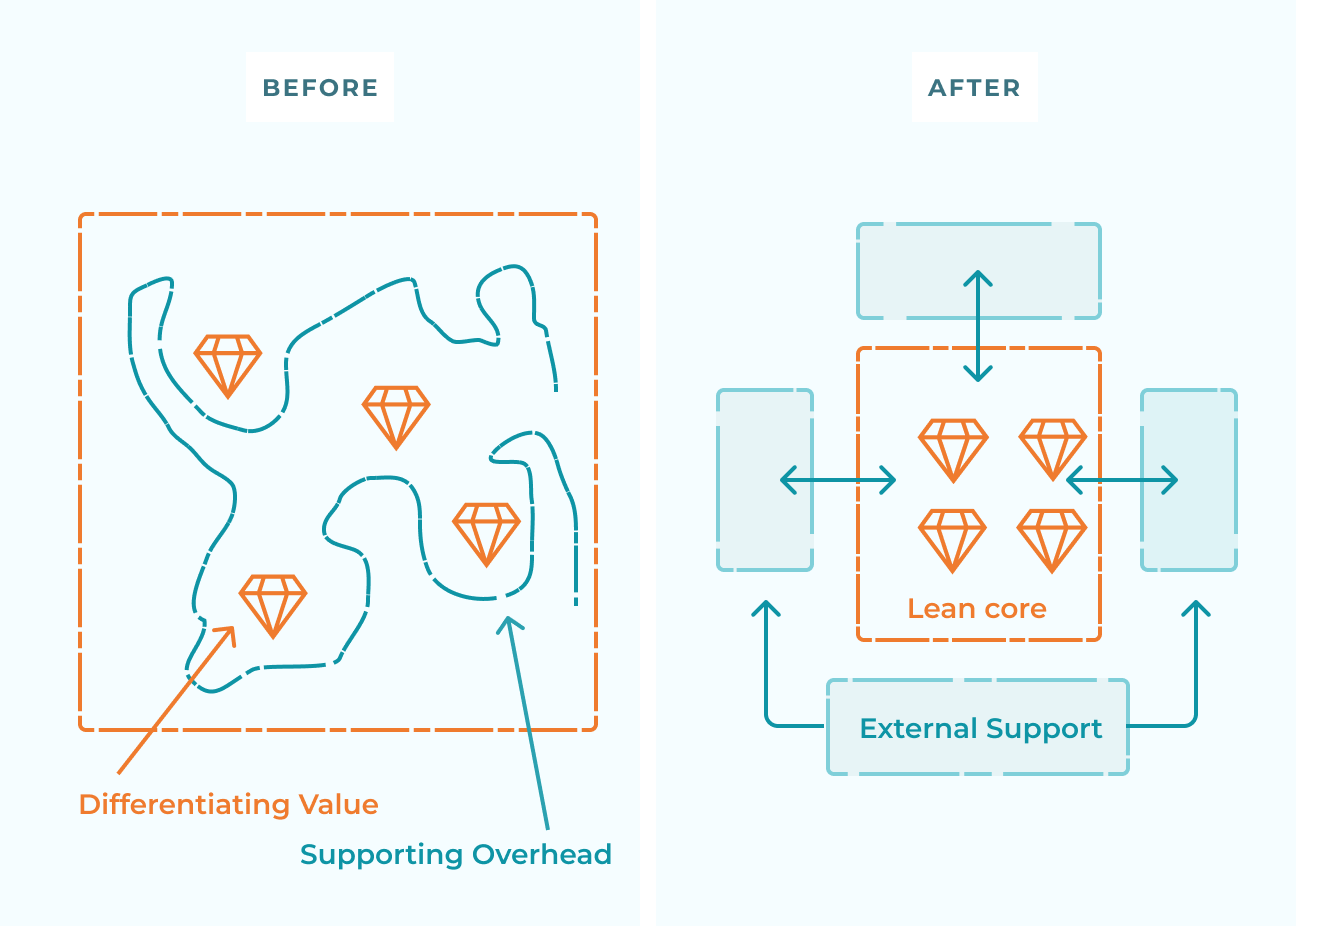 Before and After image on organizing value